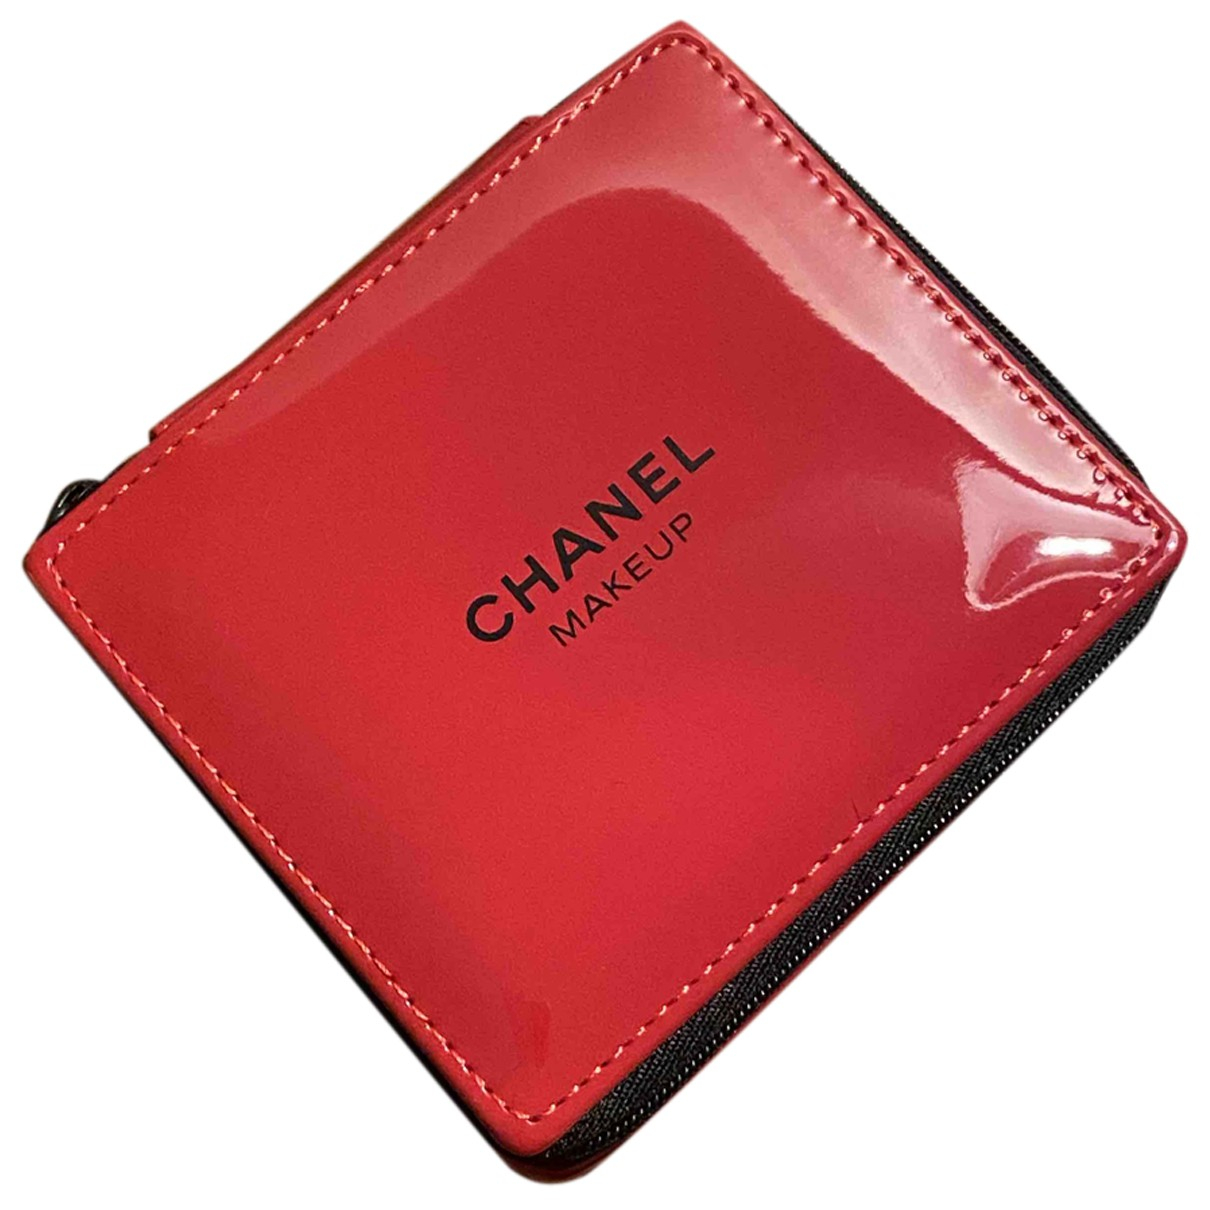 Chanel N Red Purses, wallet & cases for Women N